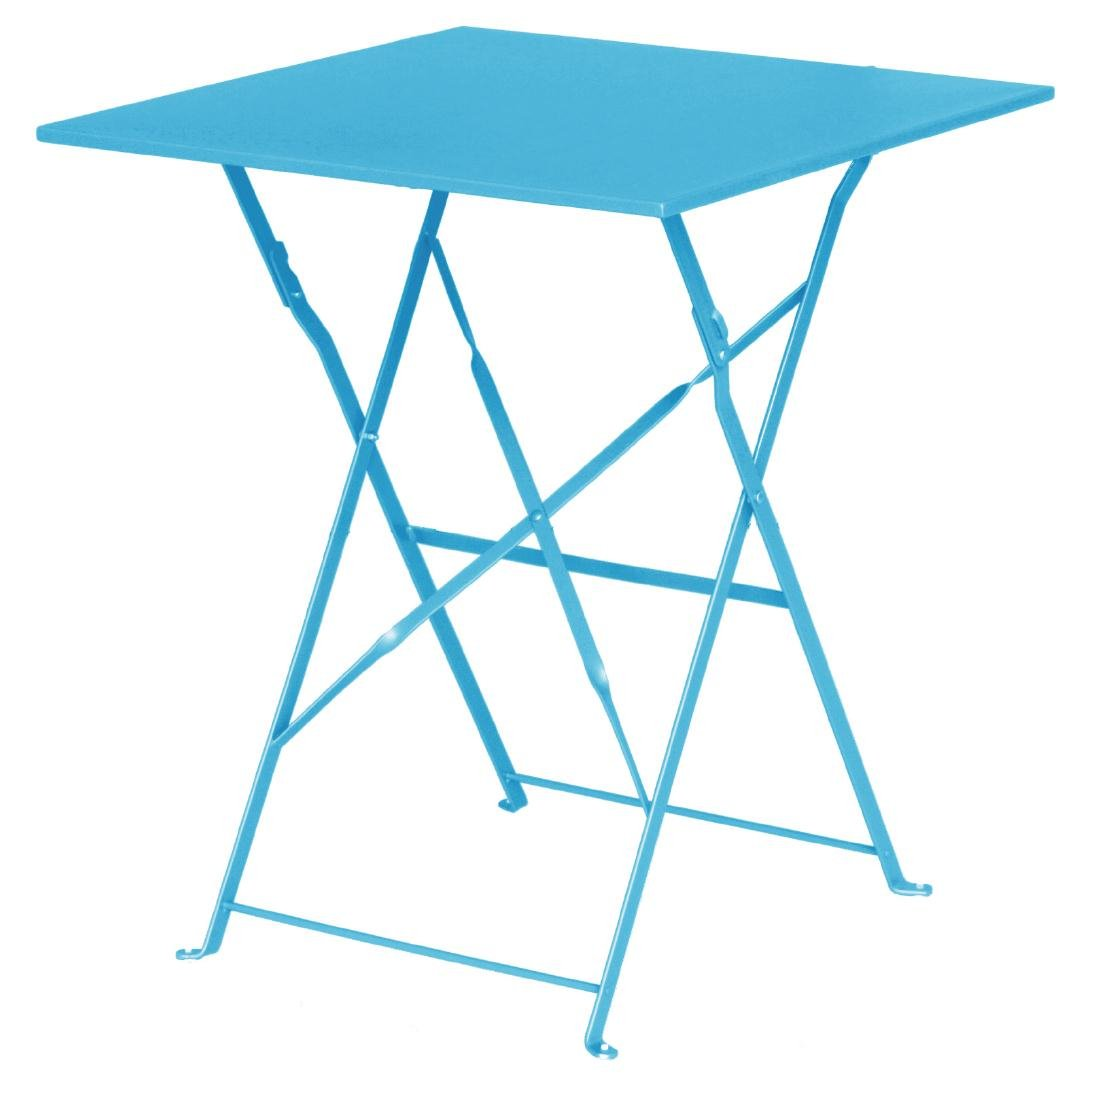 Pavement Table – The Parisian – Blue